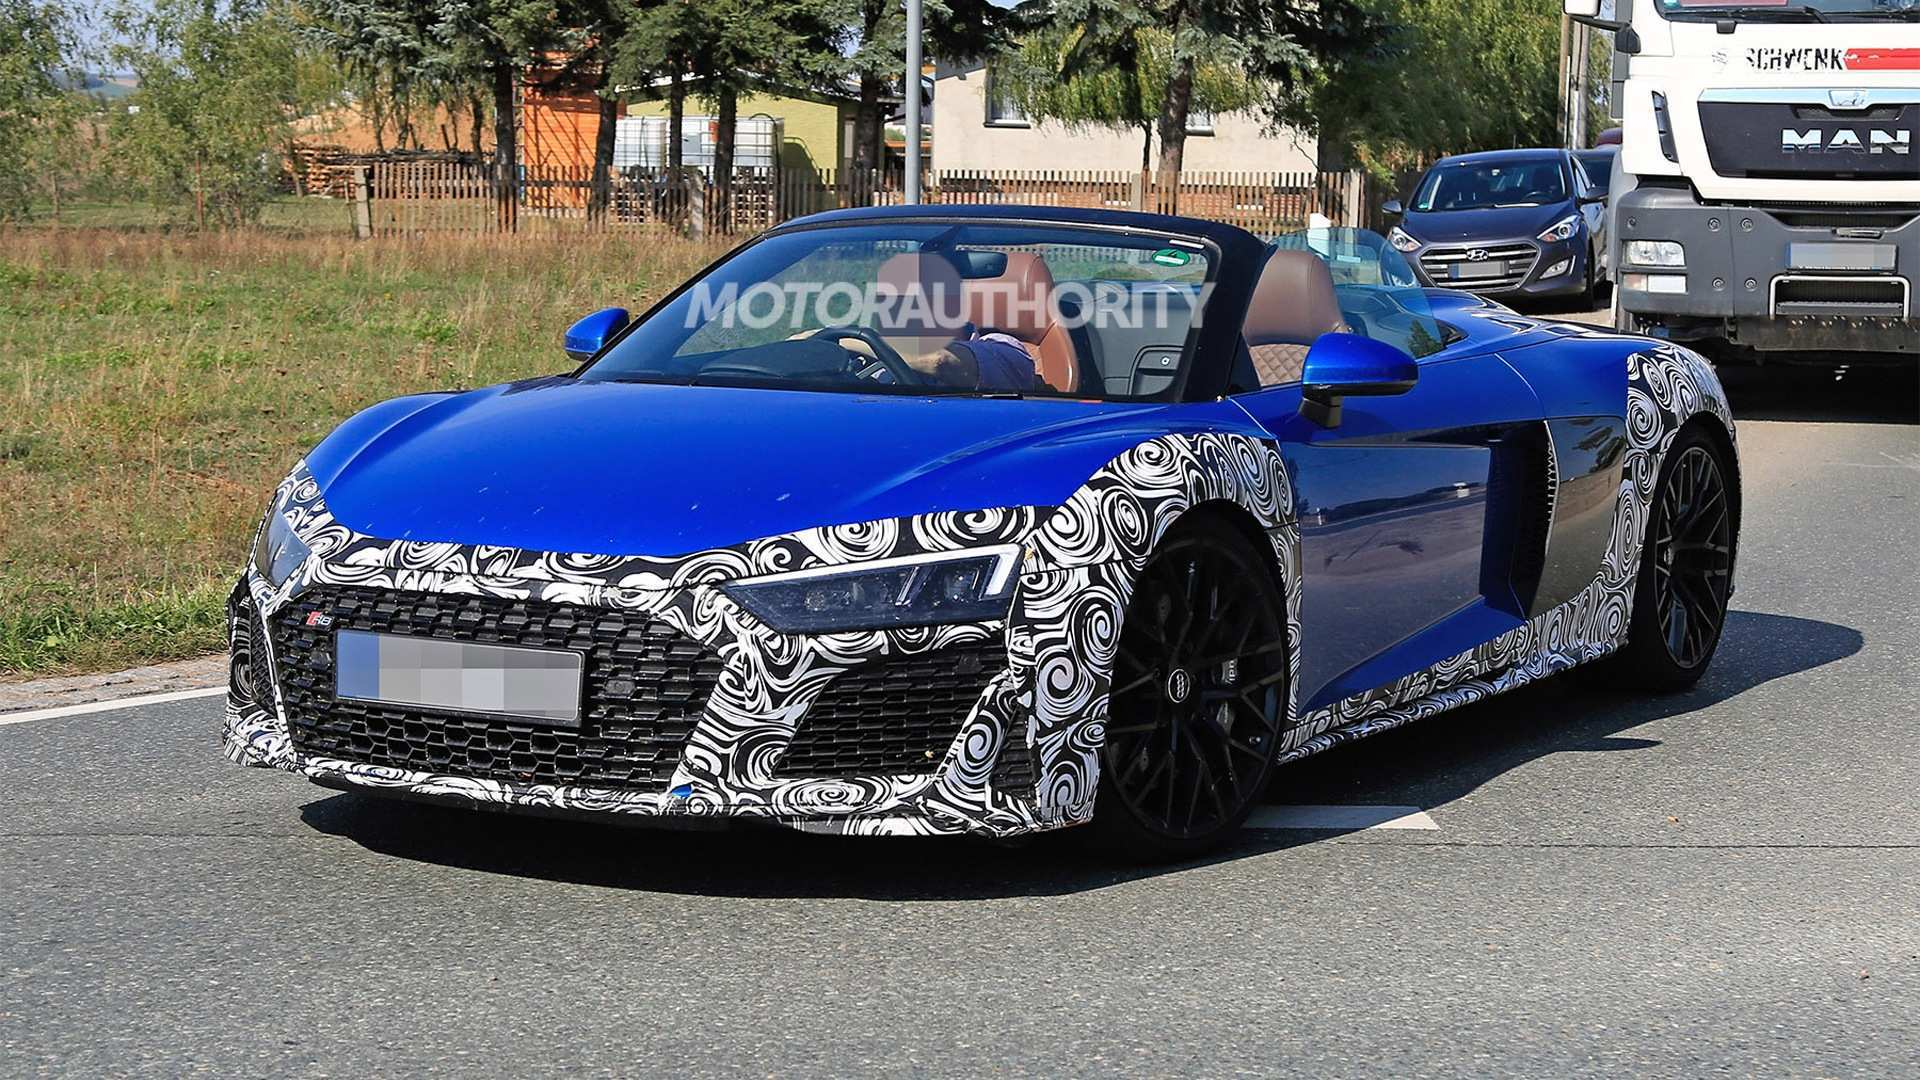 30 Gallery of 2020 Audi R8 Configurations with 2020 Audi R8